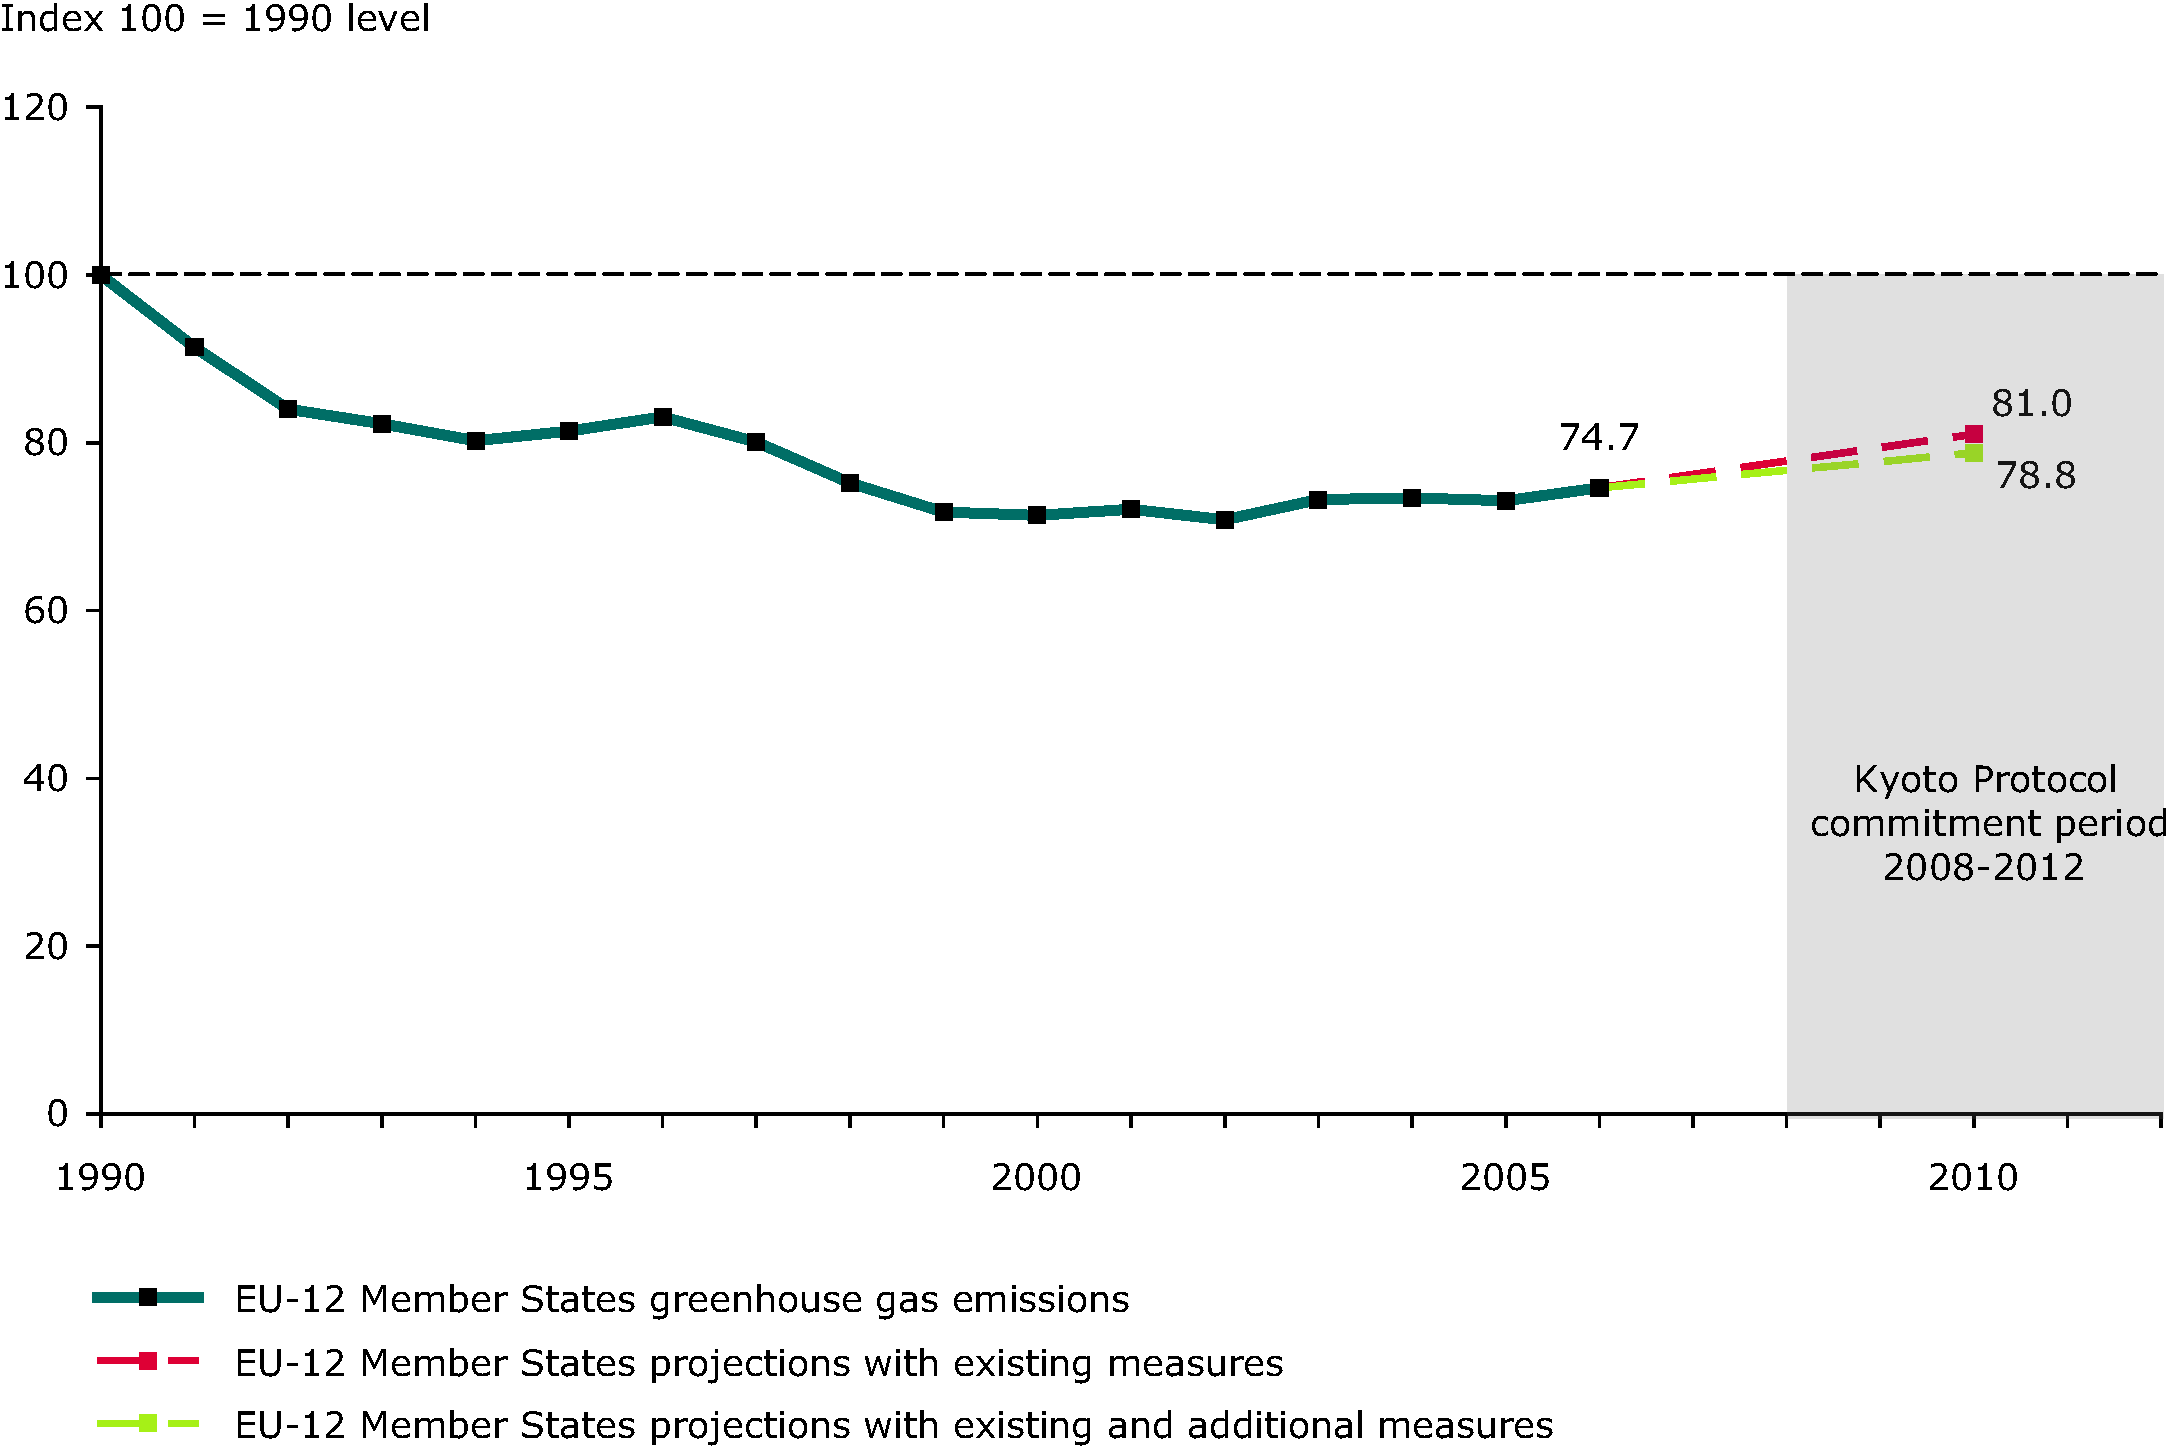 Past and projected EU-12 greenhouse gas emissions